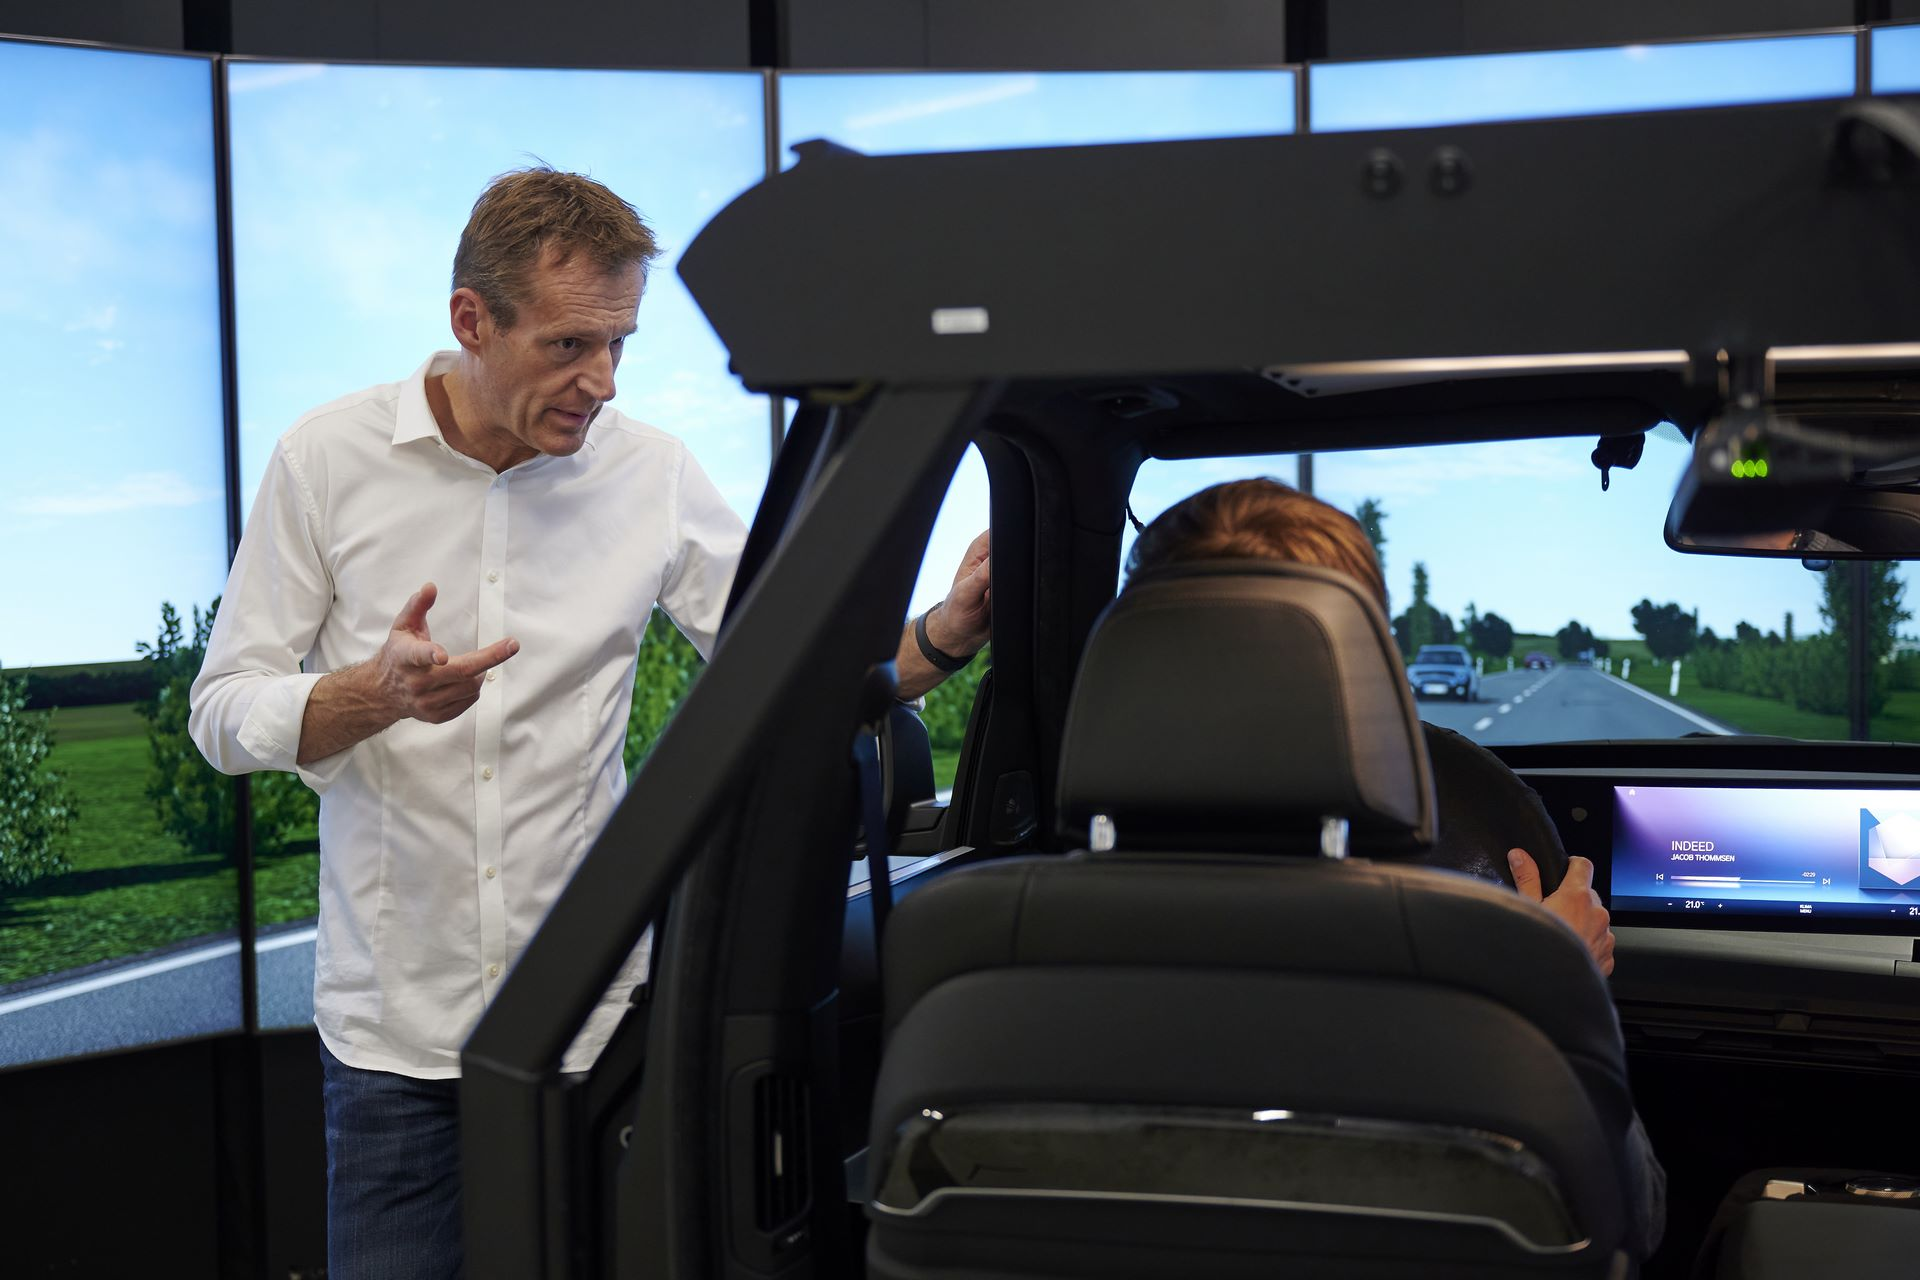 BMW-Driving-Simulation-Centre-12